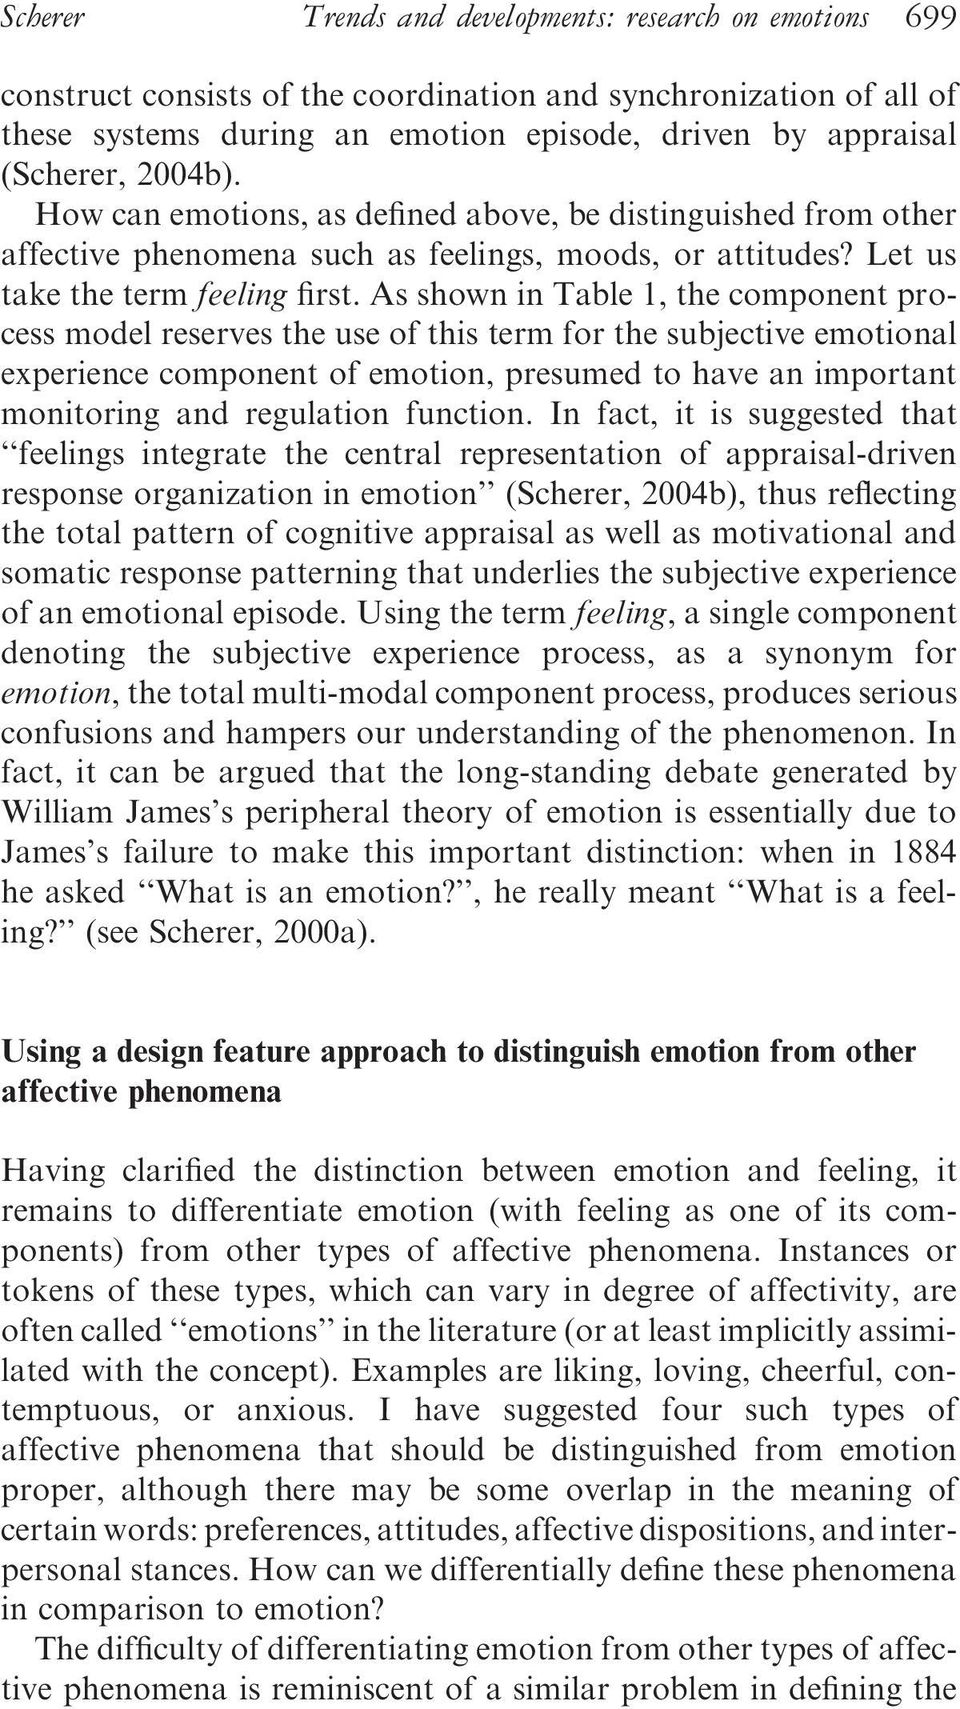 As shown in Table 1, the component process model reserves the use of this term for the subjective emotional experience component of emotion, presumed to have an important monitoring and regulation